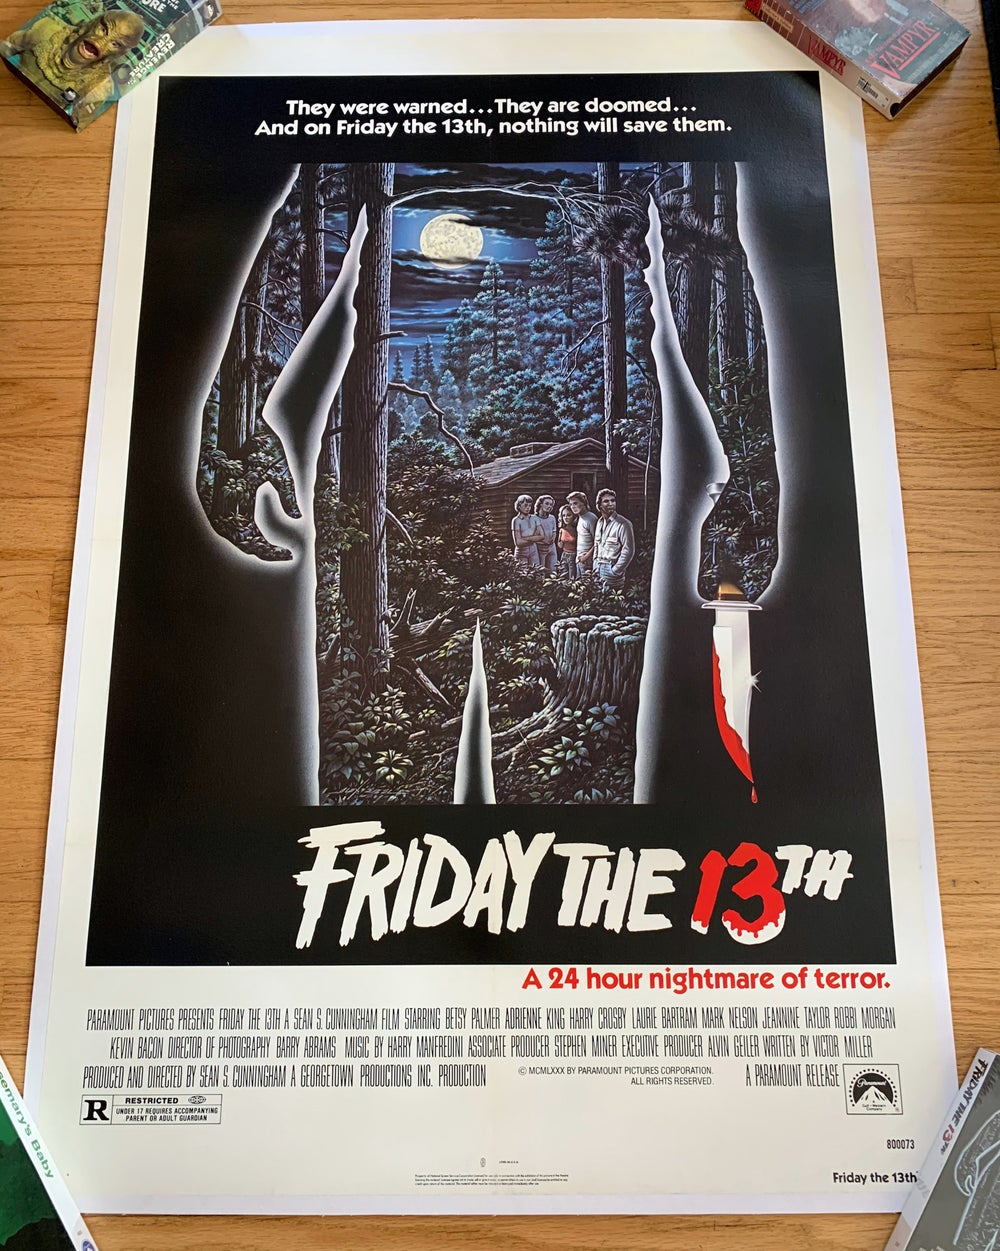 1980 FRIDAY THE 13TH Original U.S. Linen Backed One Sheet Movie Poster